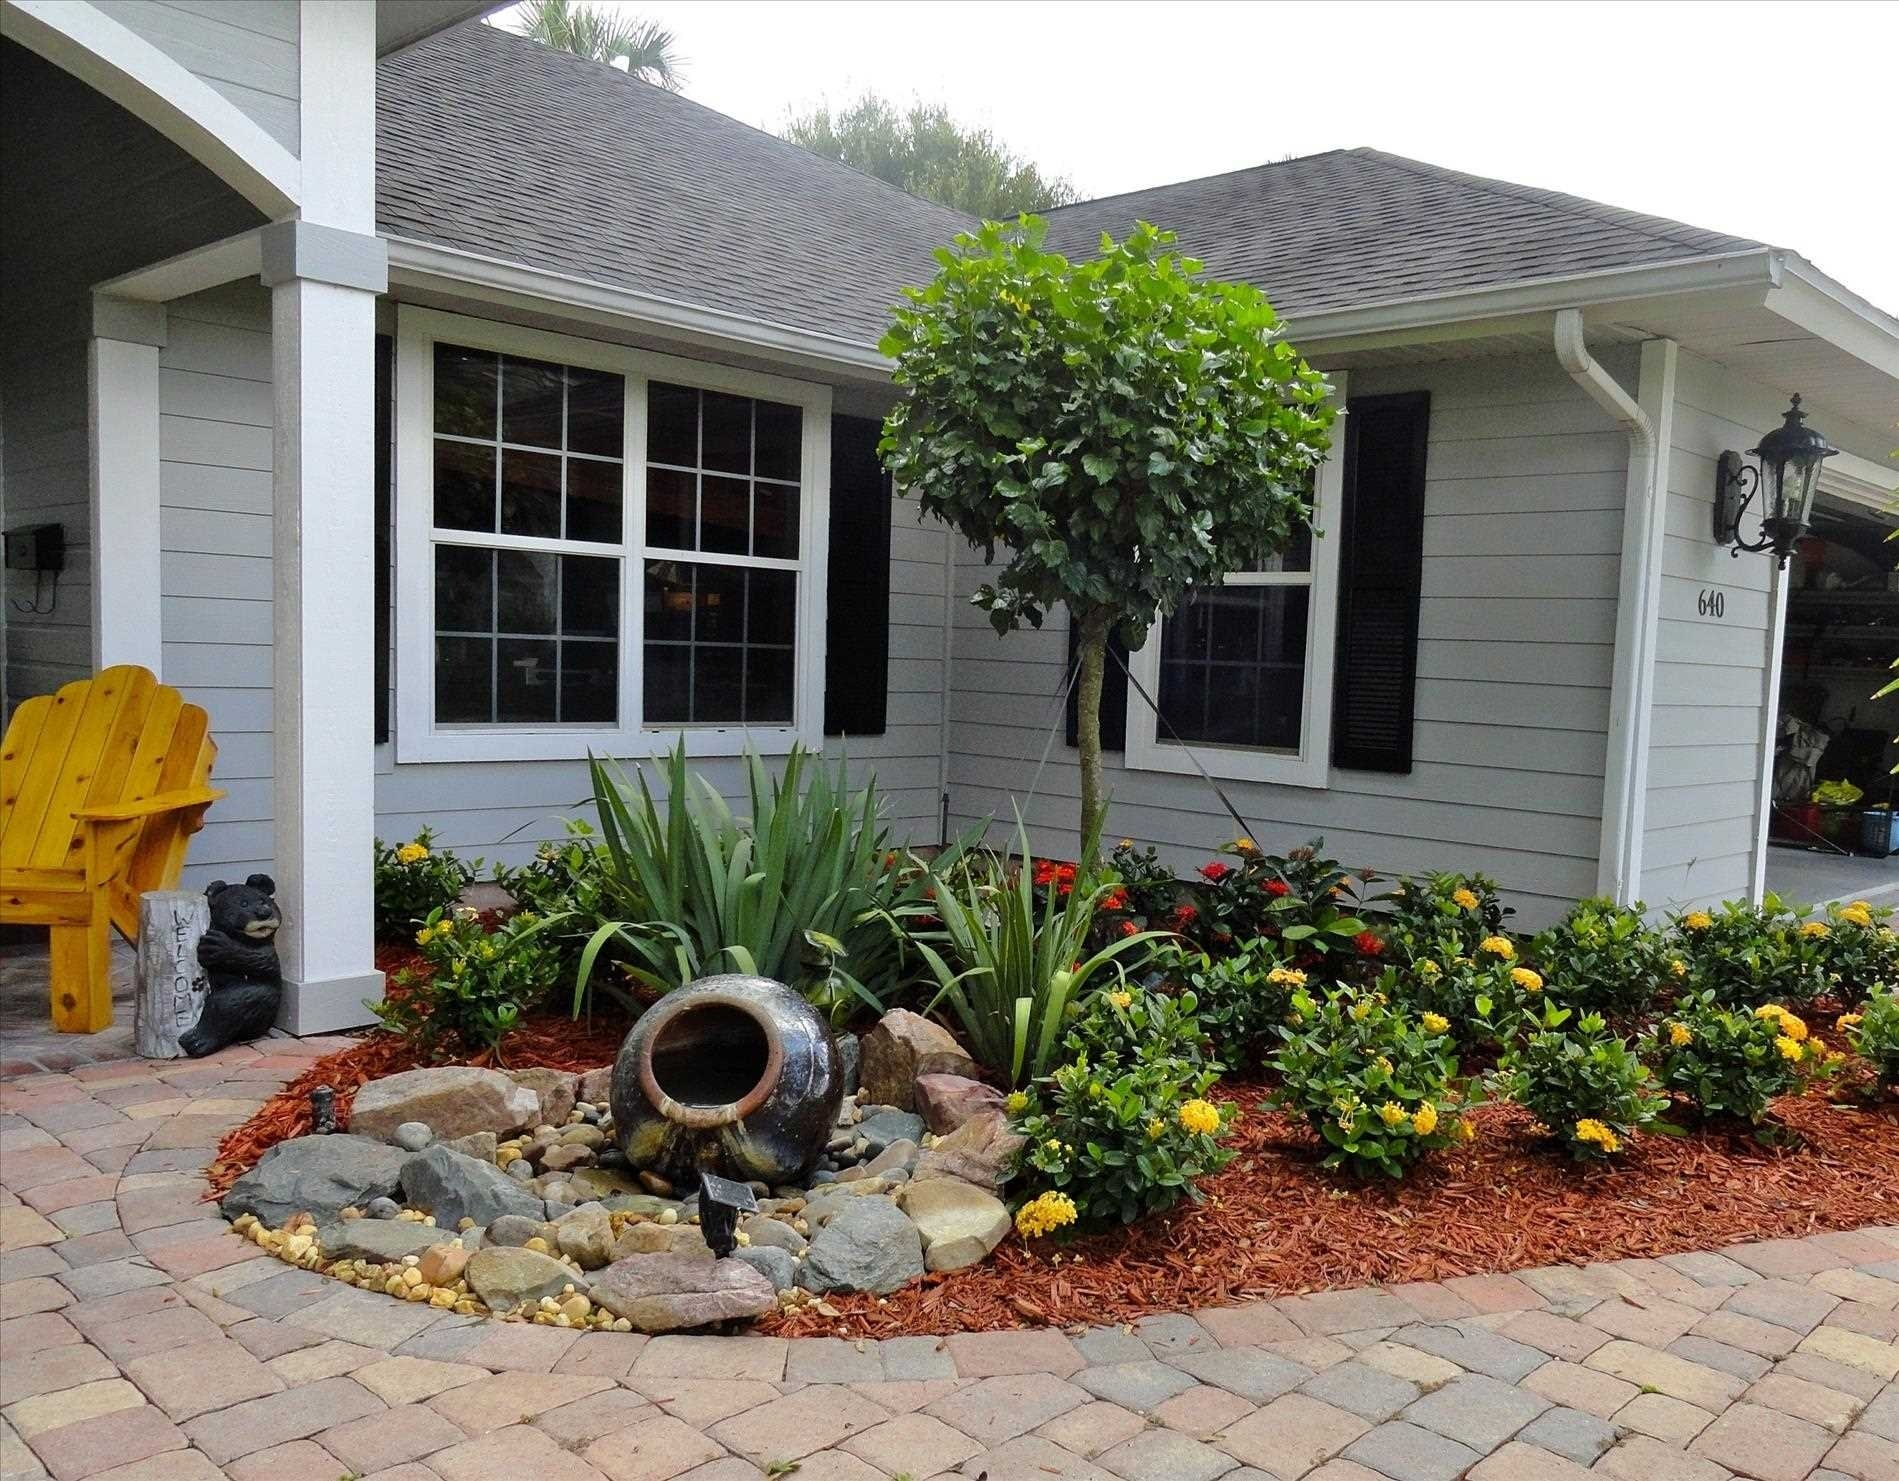 10 Stylish Simple Front Yard Landscaping Ideas On A Budget simple front yard landscaping ideas pictures applying with trees on 2021